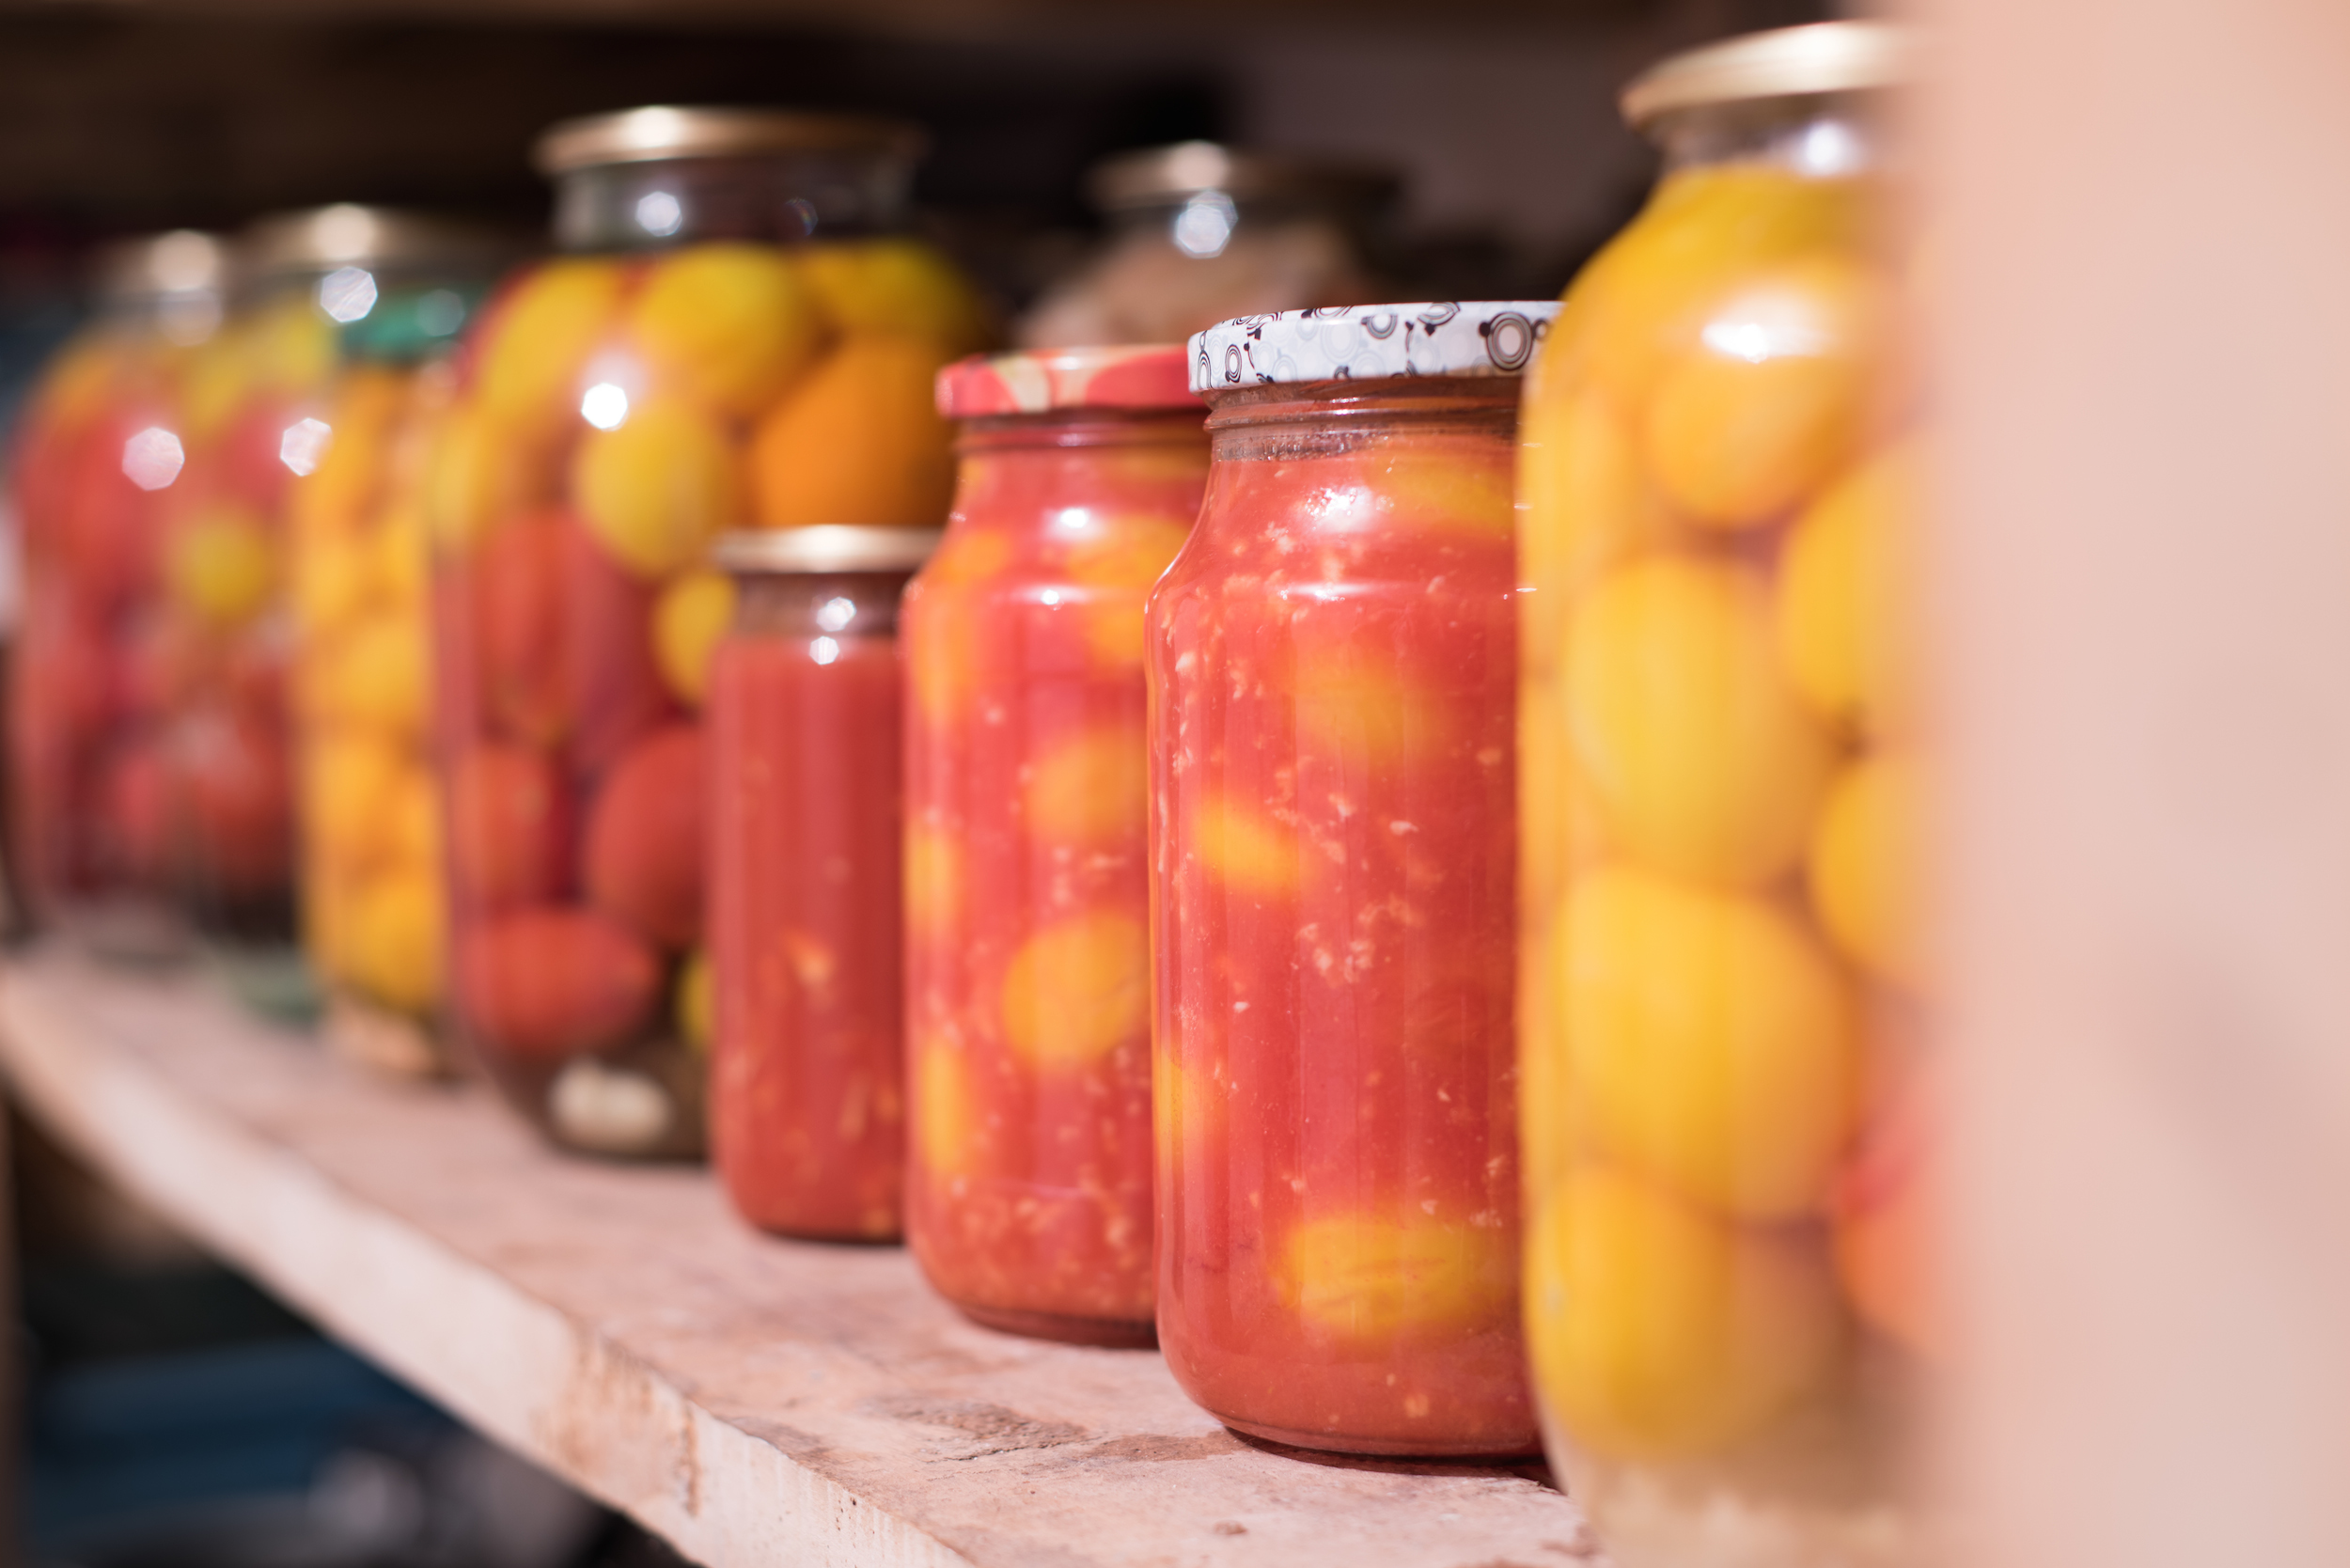 Shelf showing pickled tomatoes in glass jars